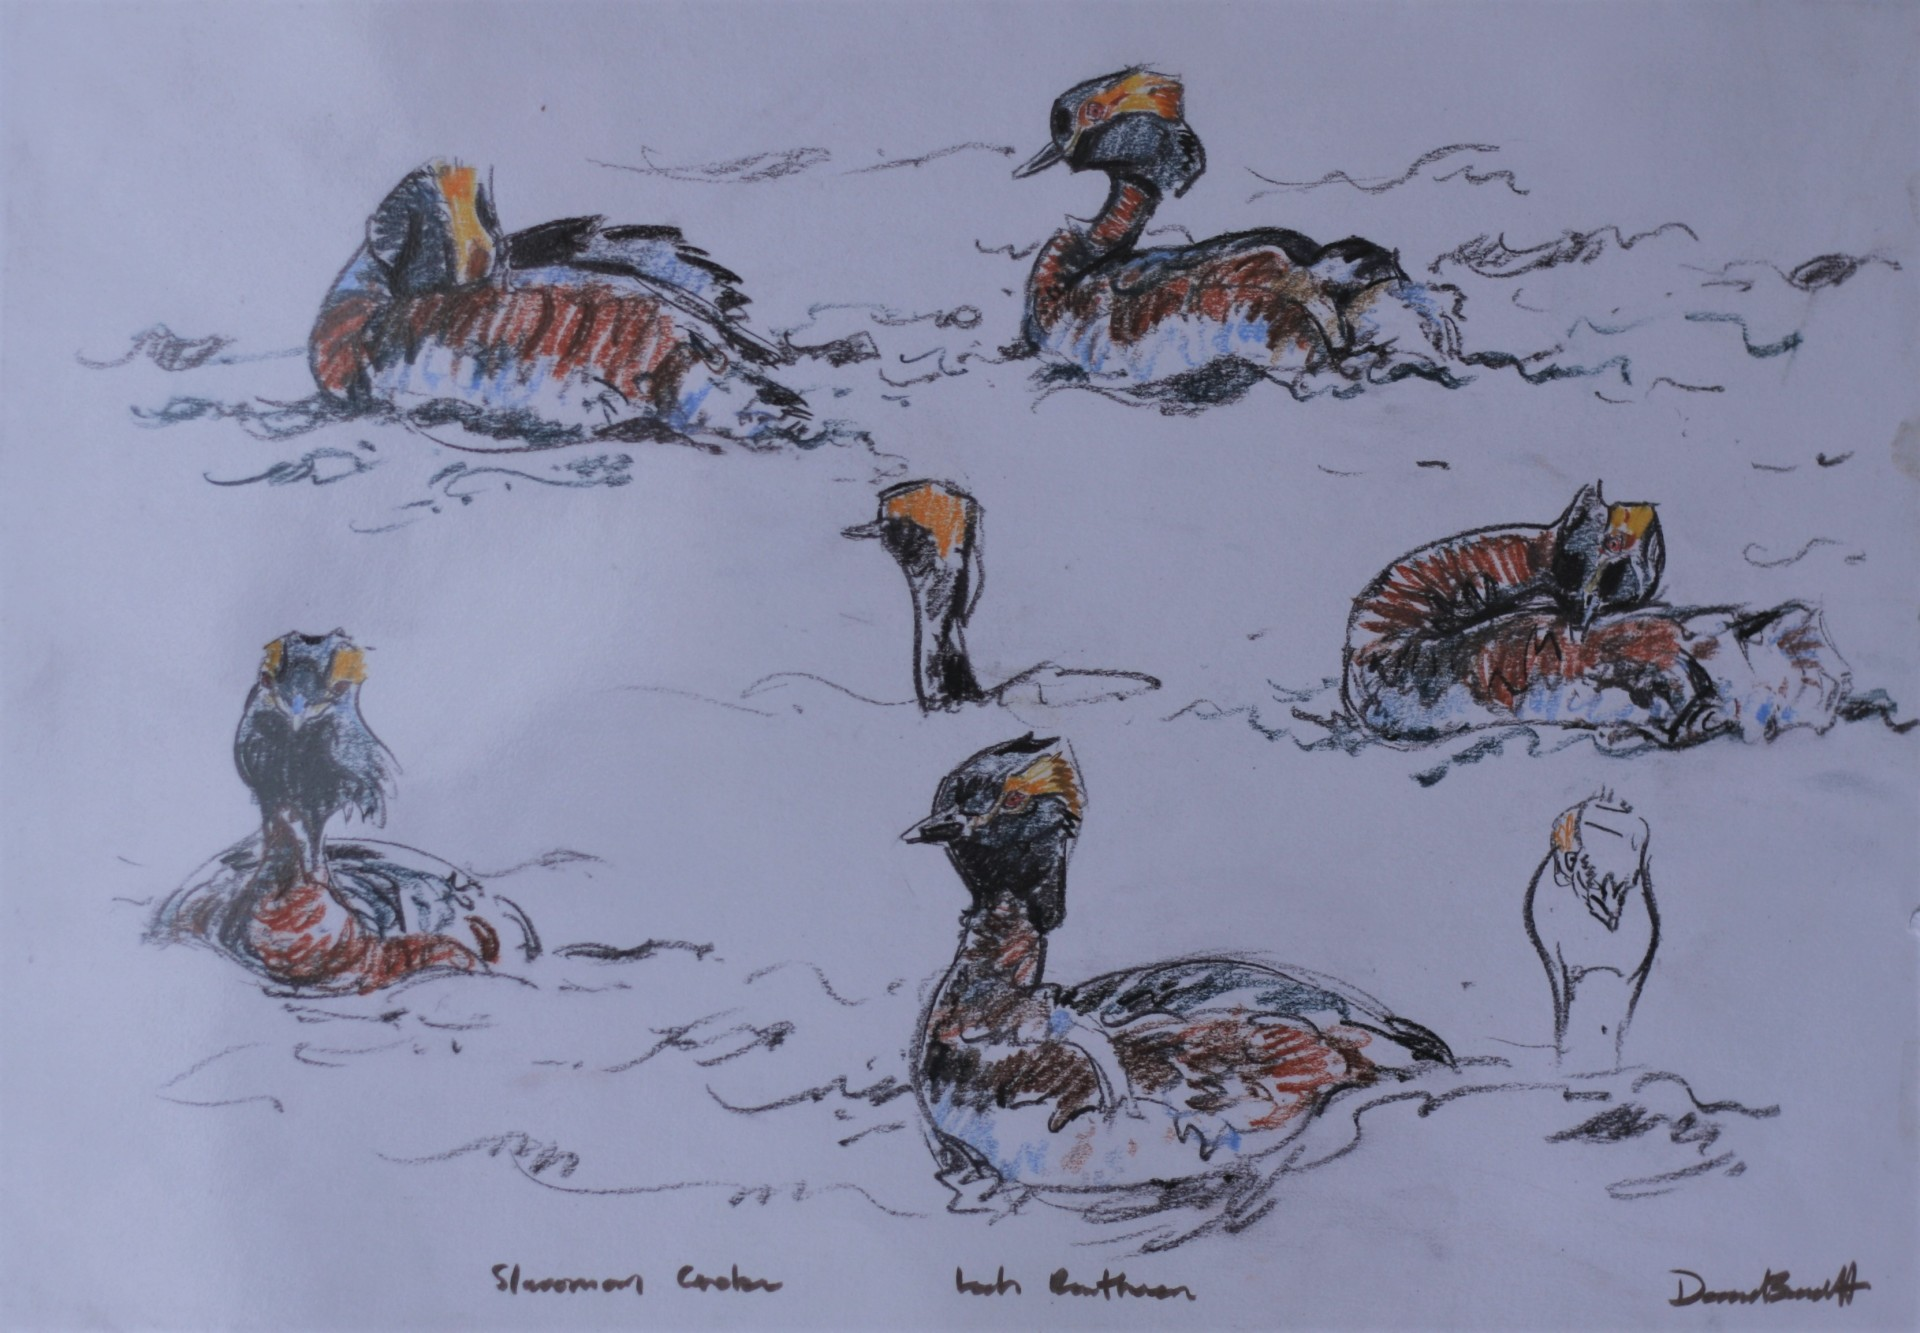 Slavonion Grebe Studies, Loch Ruthven, Highlands